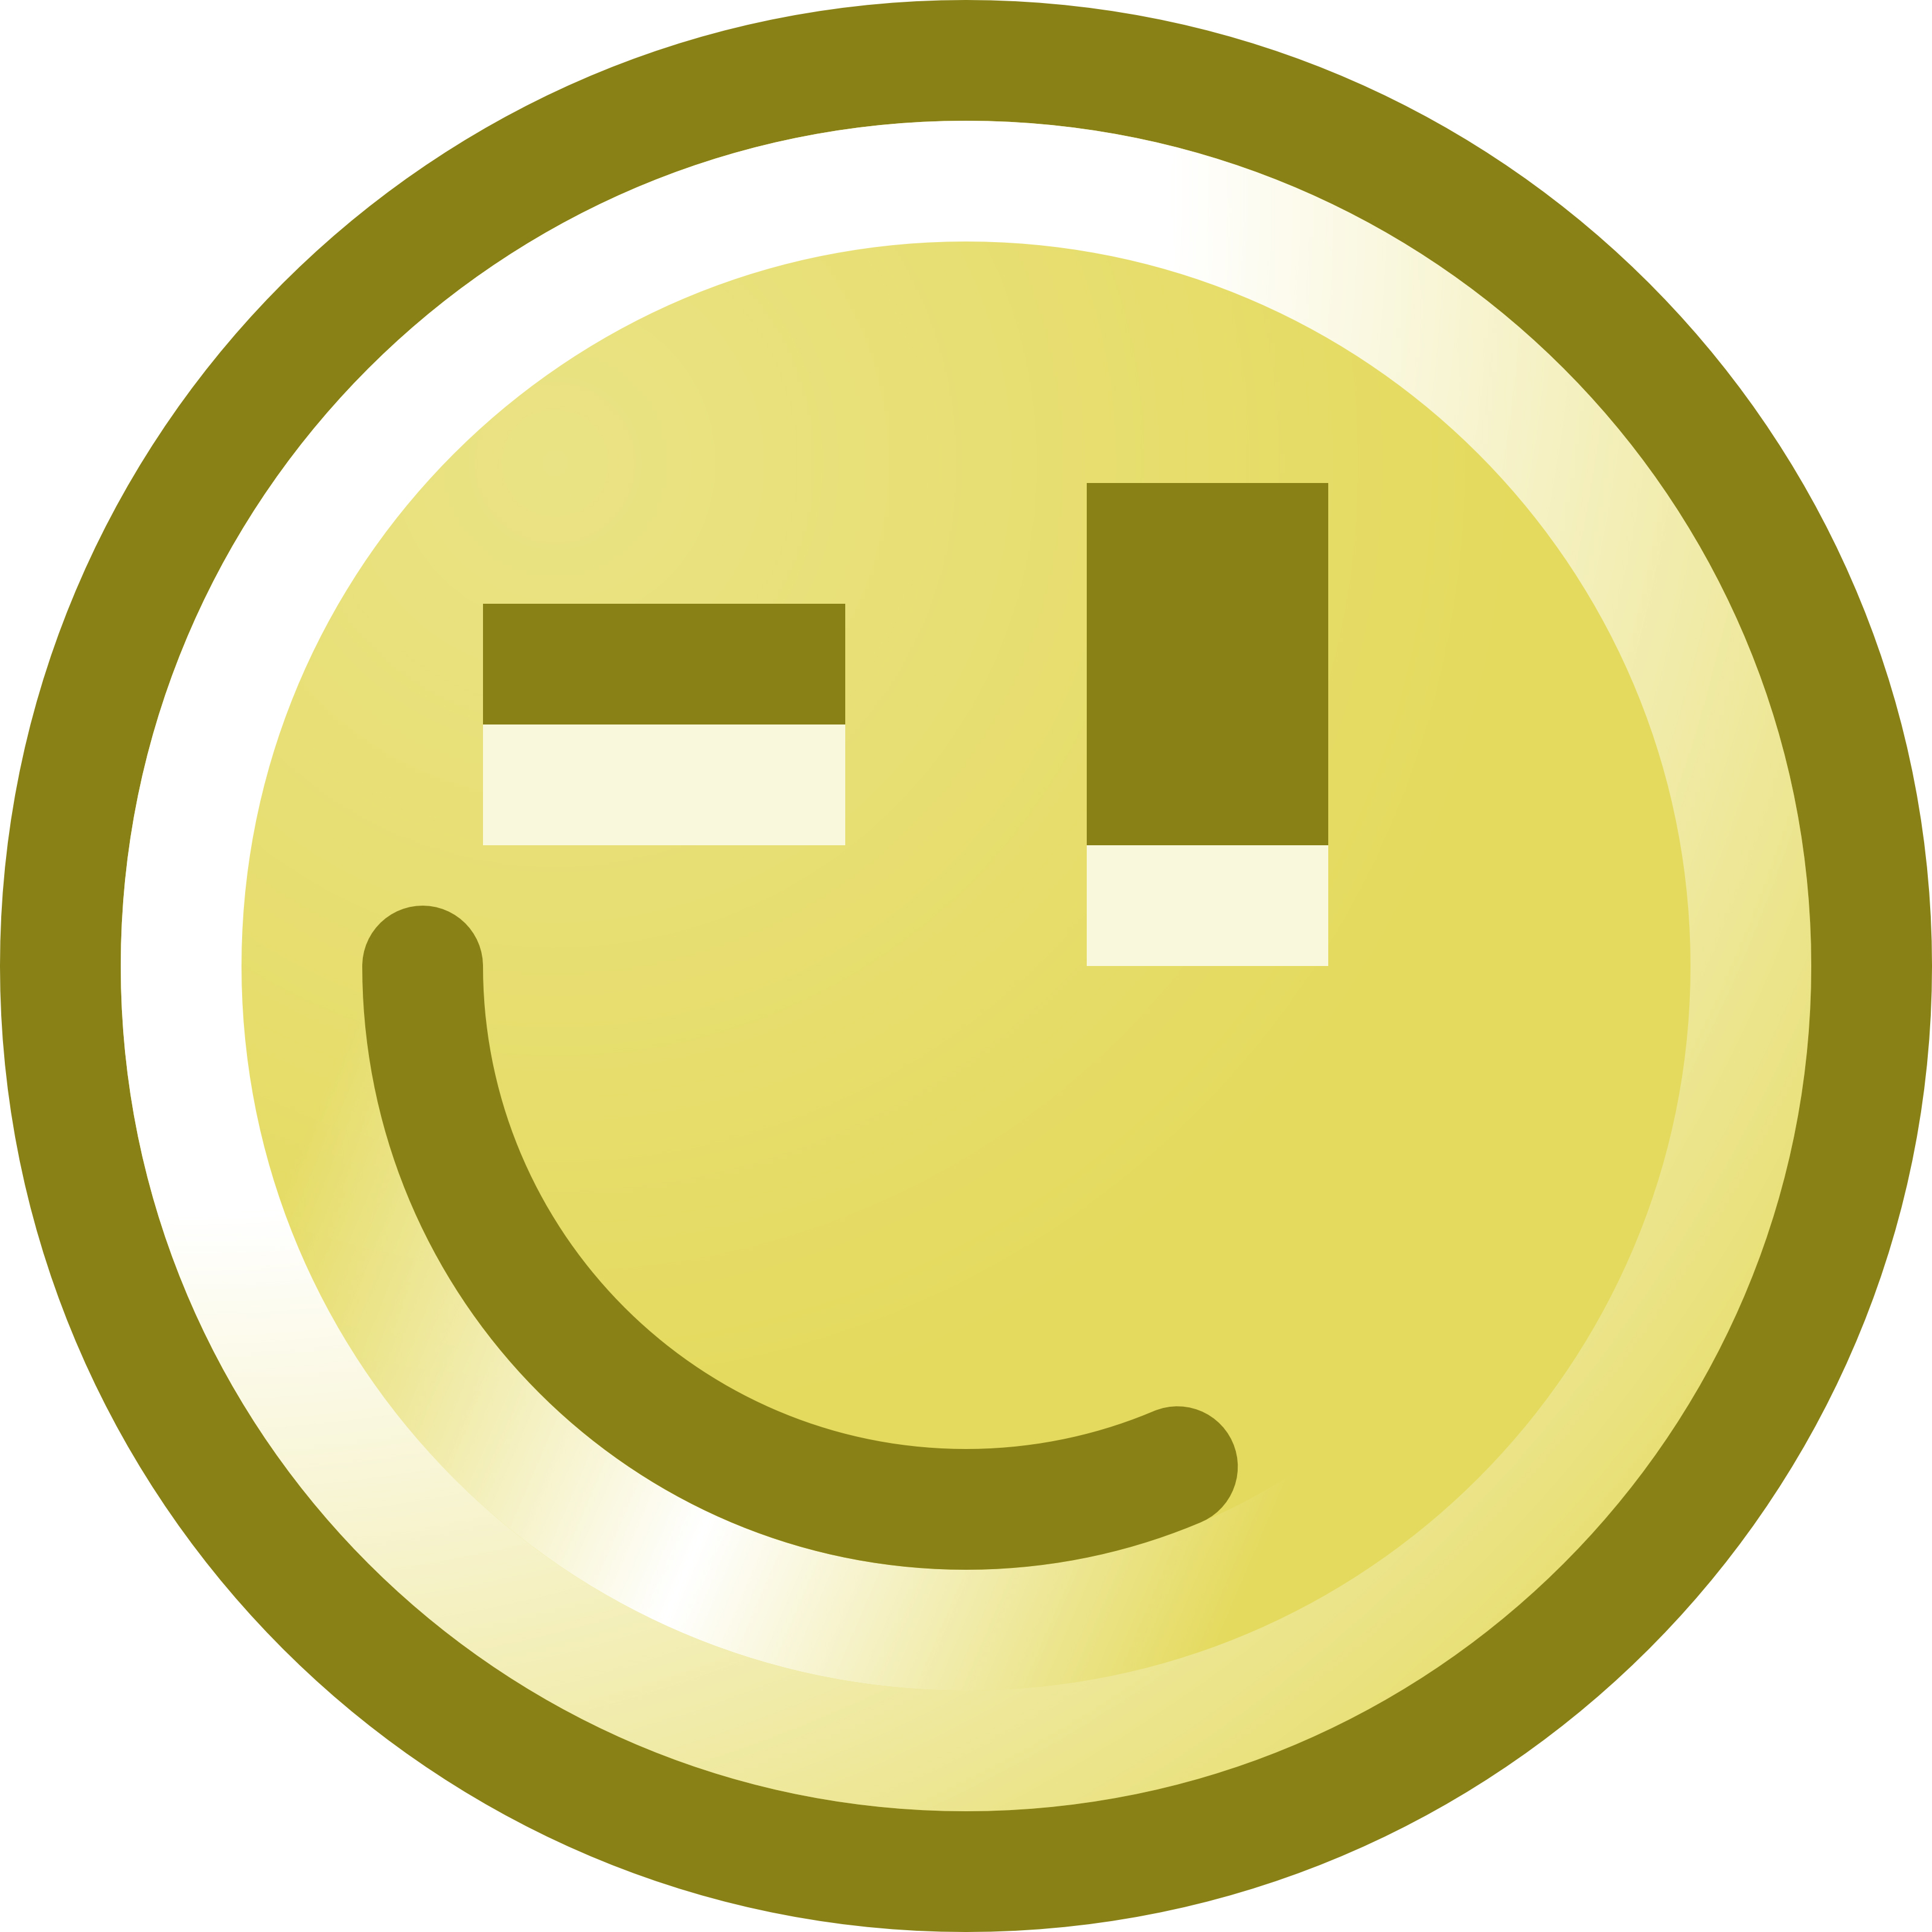 3200x3200 Wink Smiley Face With Mustache And Thumbs Up Free Clip Art Image